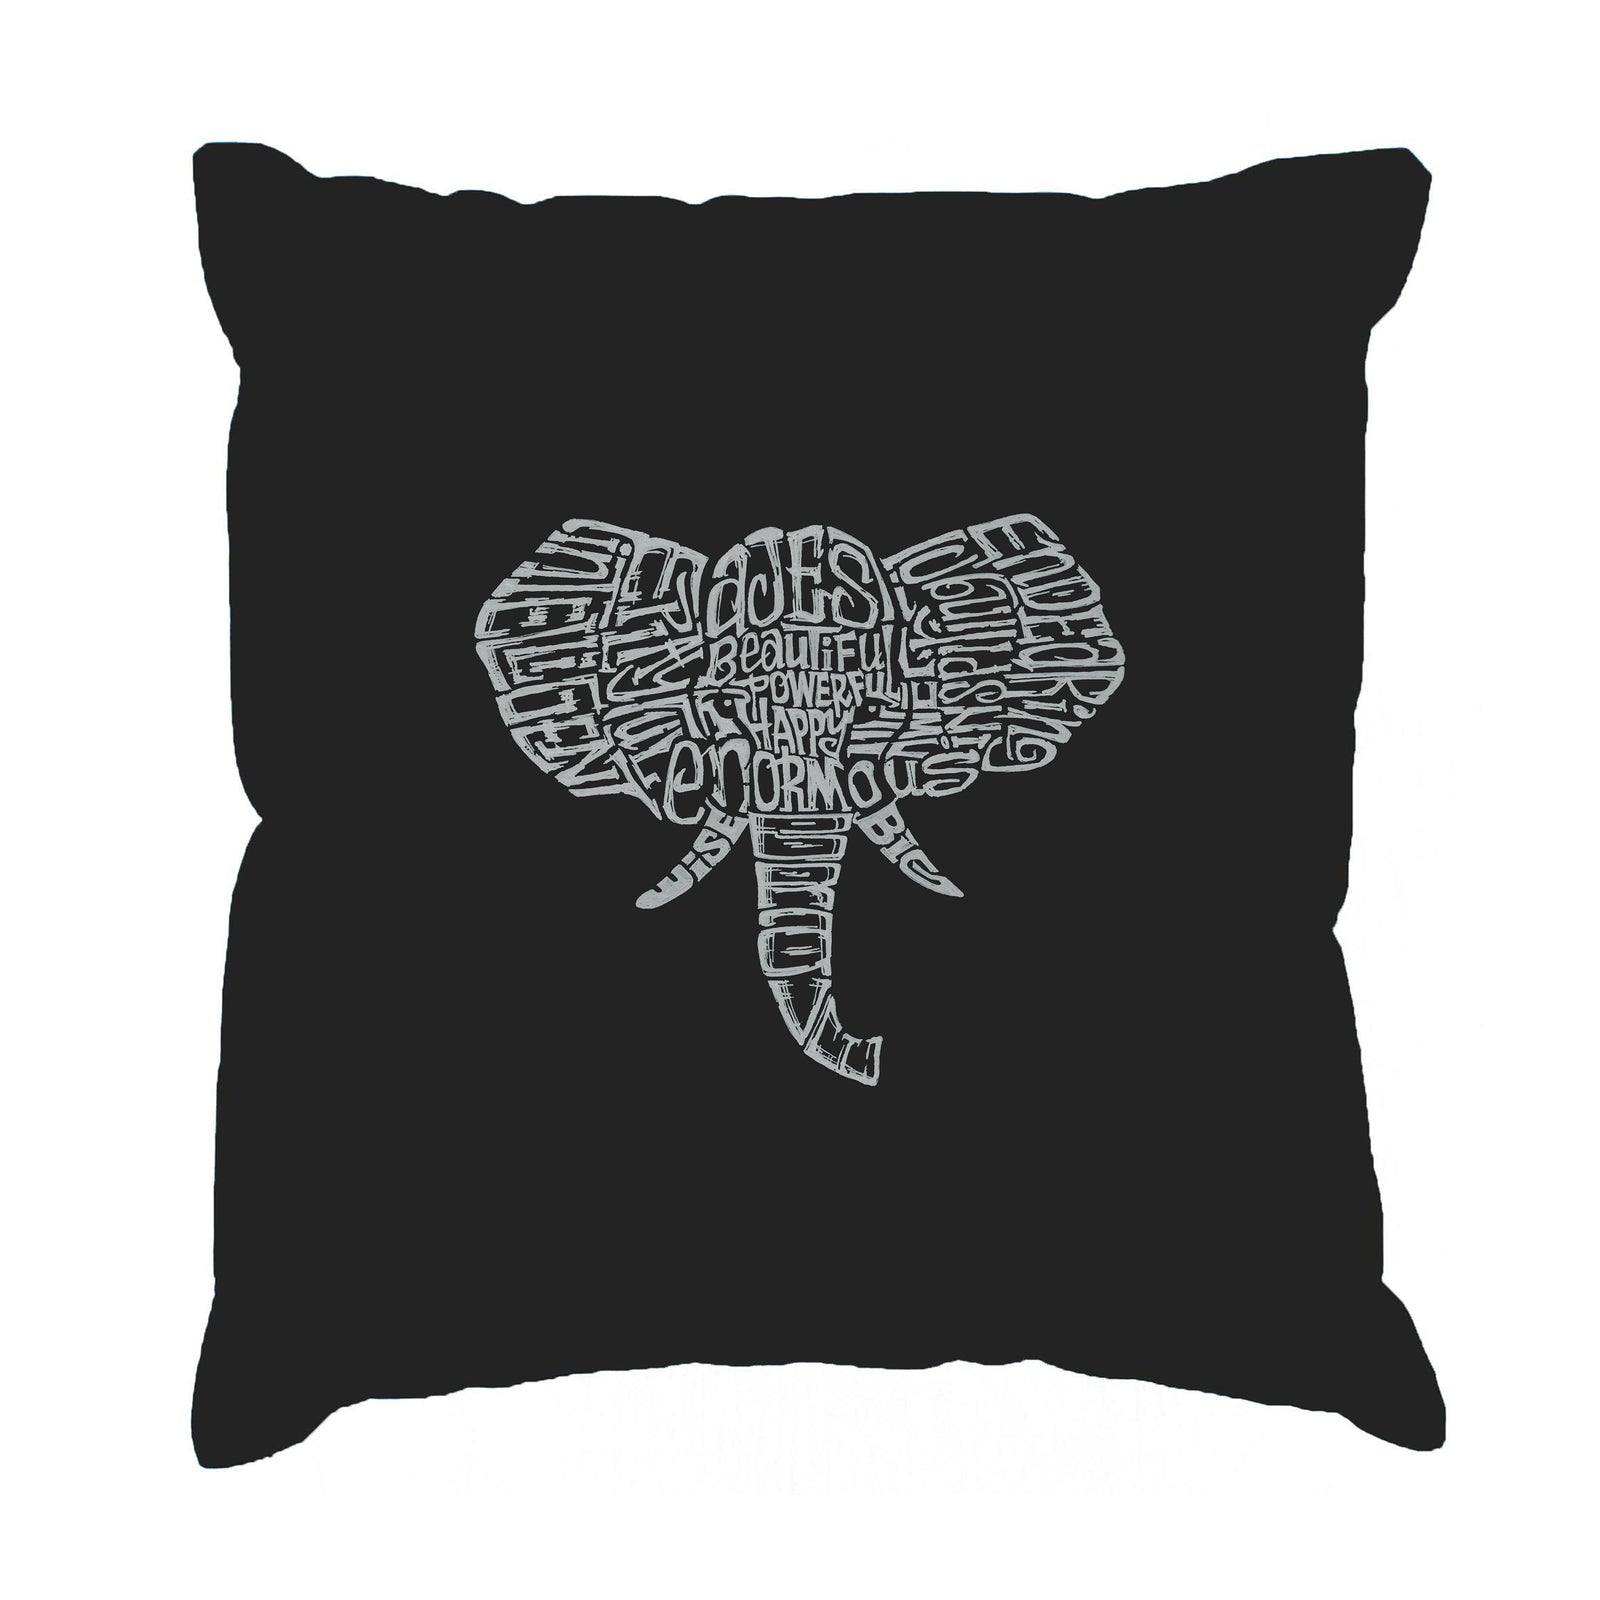 Throw Pillow Cover - Word Art - Tusks